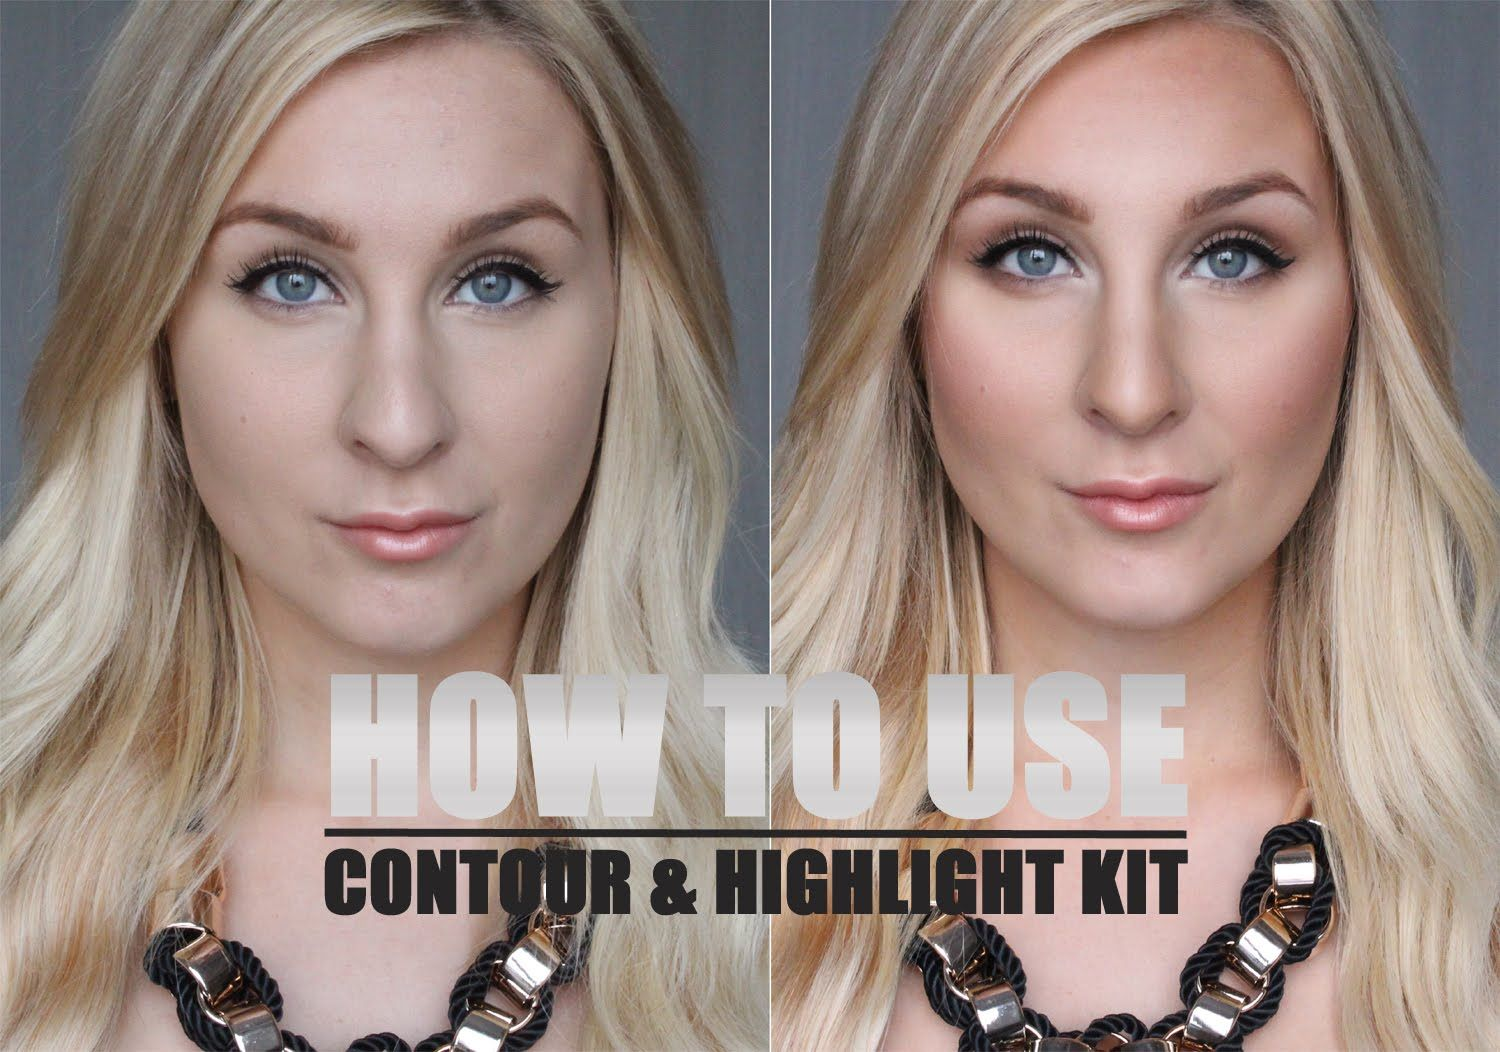 HOW TO USE - Contour & highlight kit  - Helen